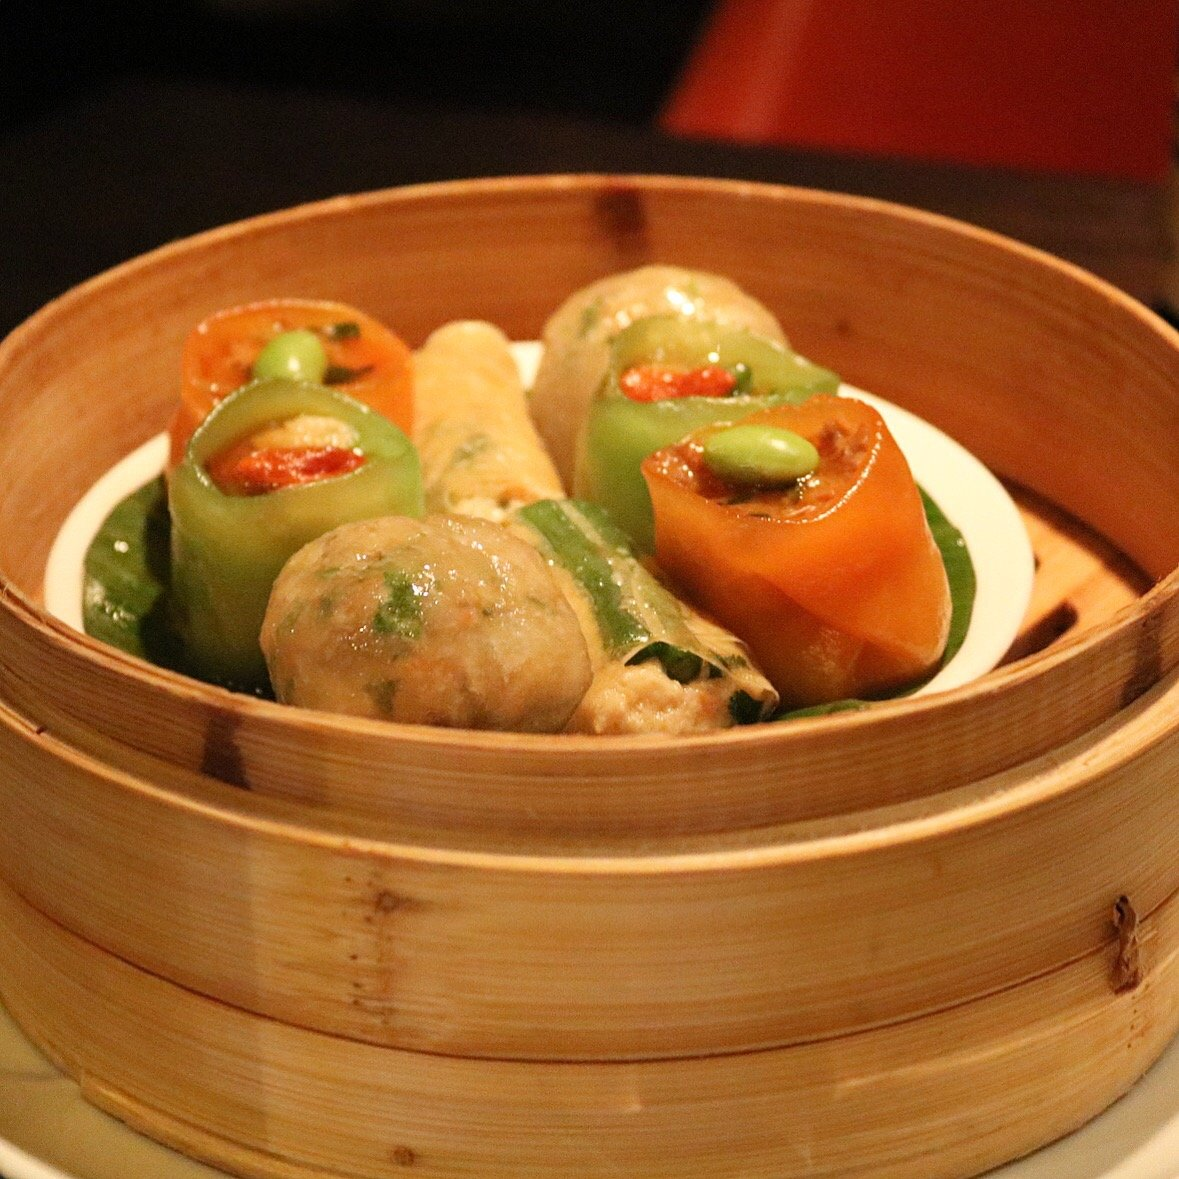 A Celebratory dinner at Michelin Starred Hakkasan Mayfair